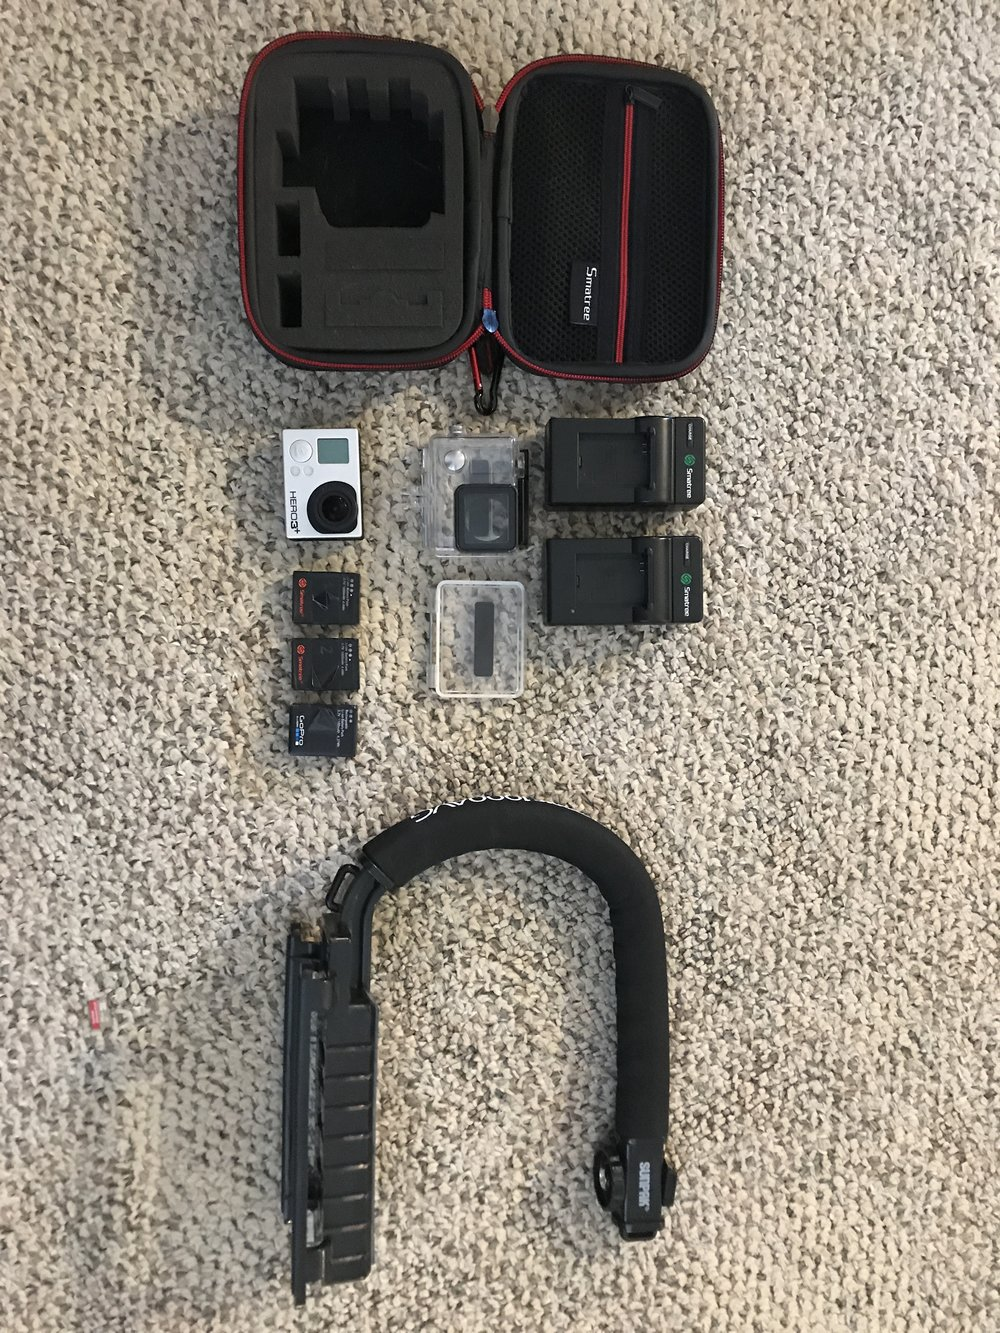 $200 GREAT CONDITION: GoPro hero 3  - with protective carrying case, 3 batteries, 2 external battery chargers and skate gripRETAIL: $325